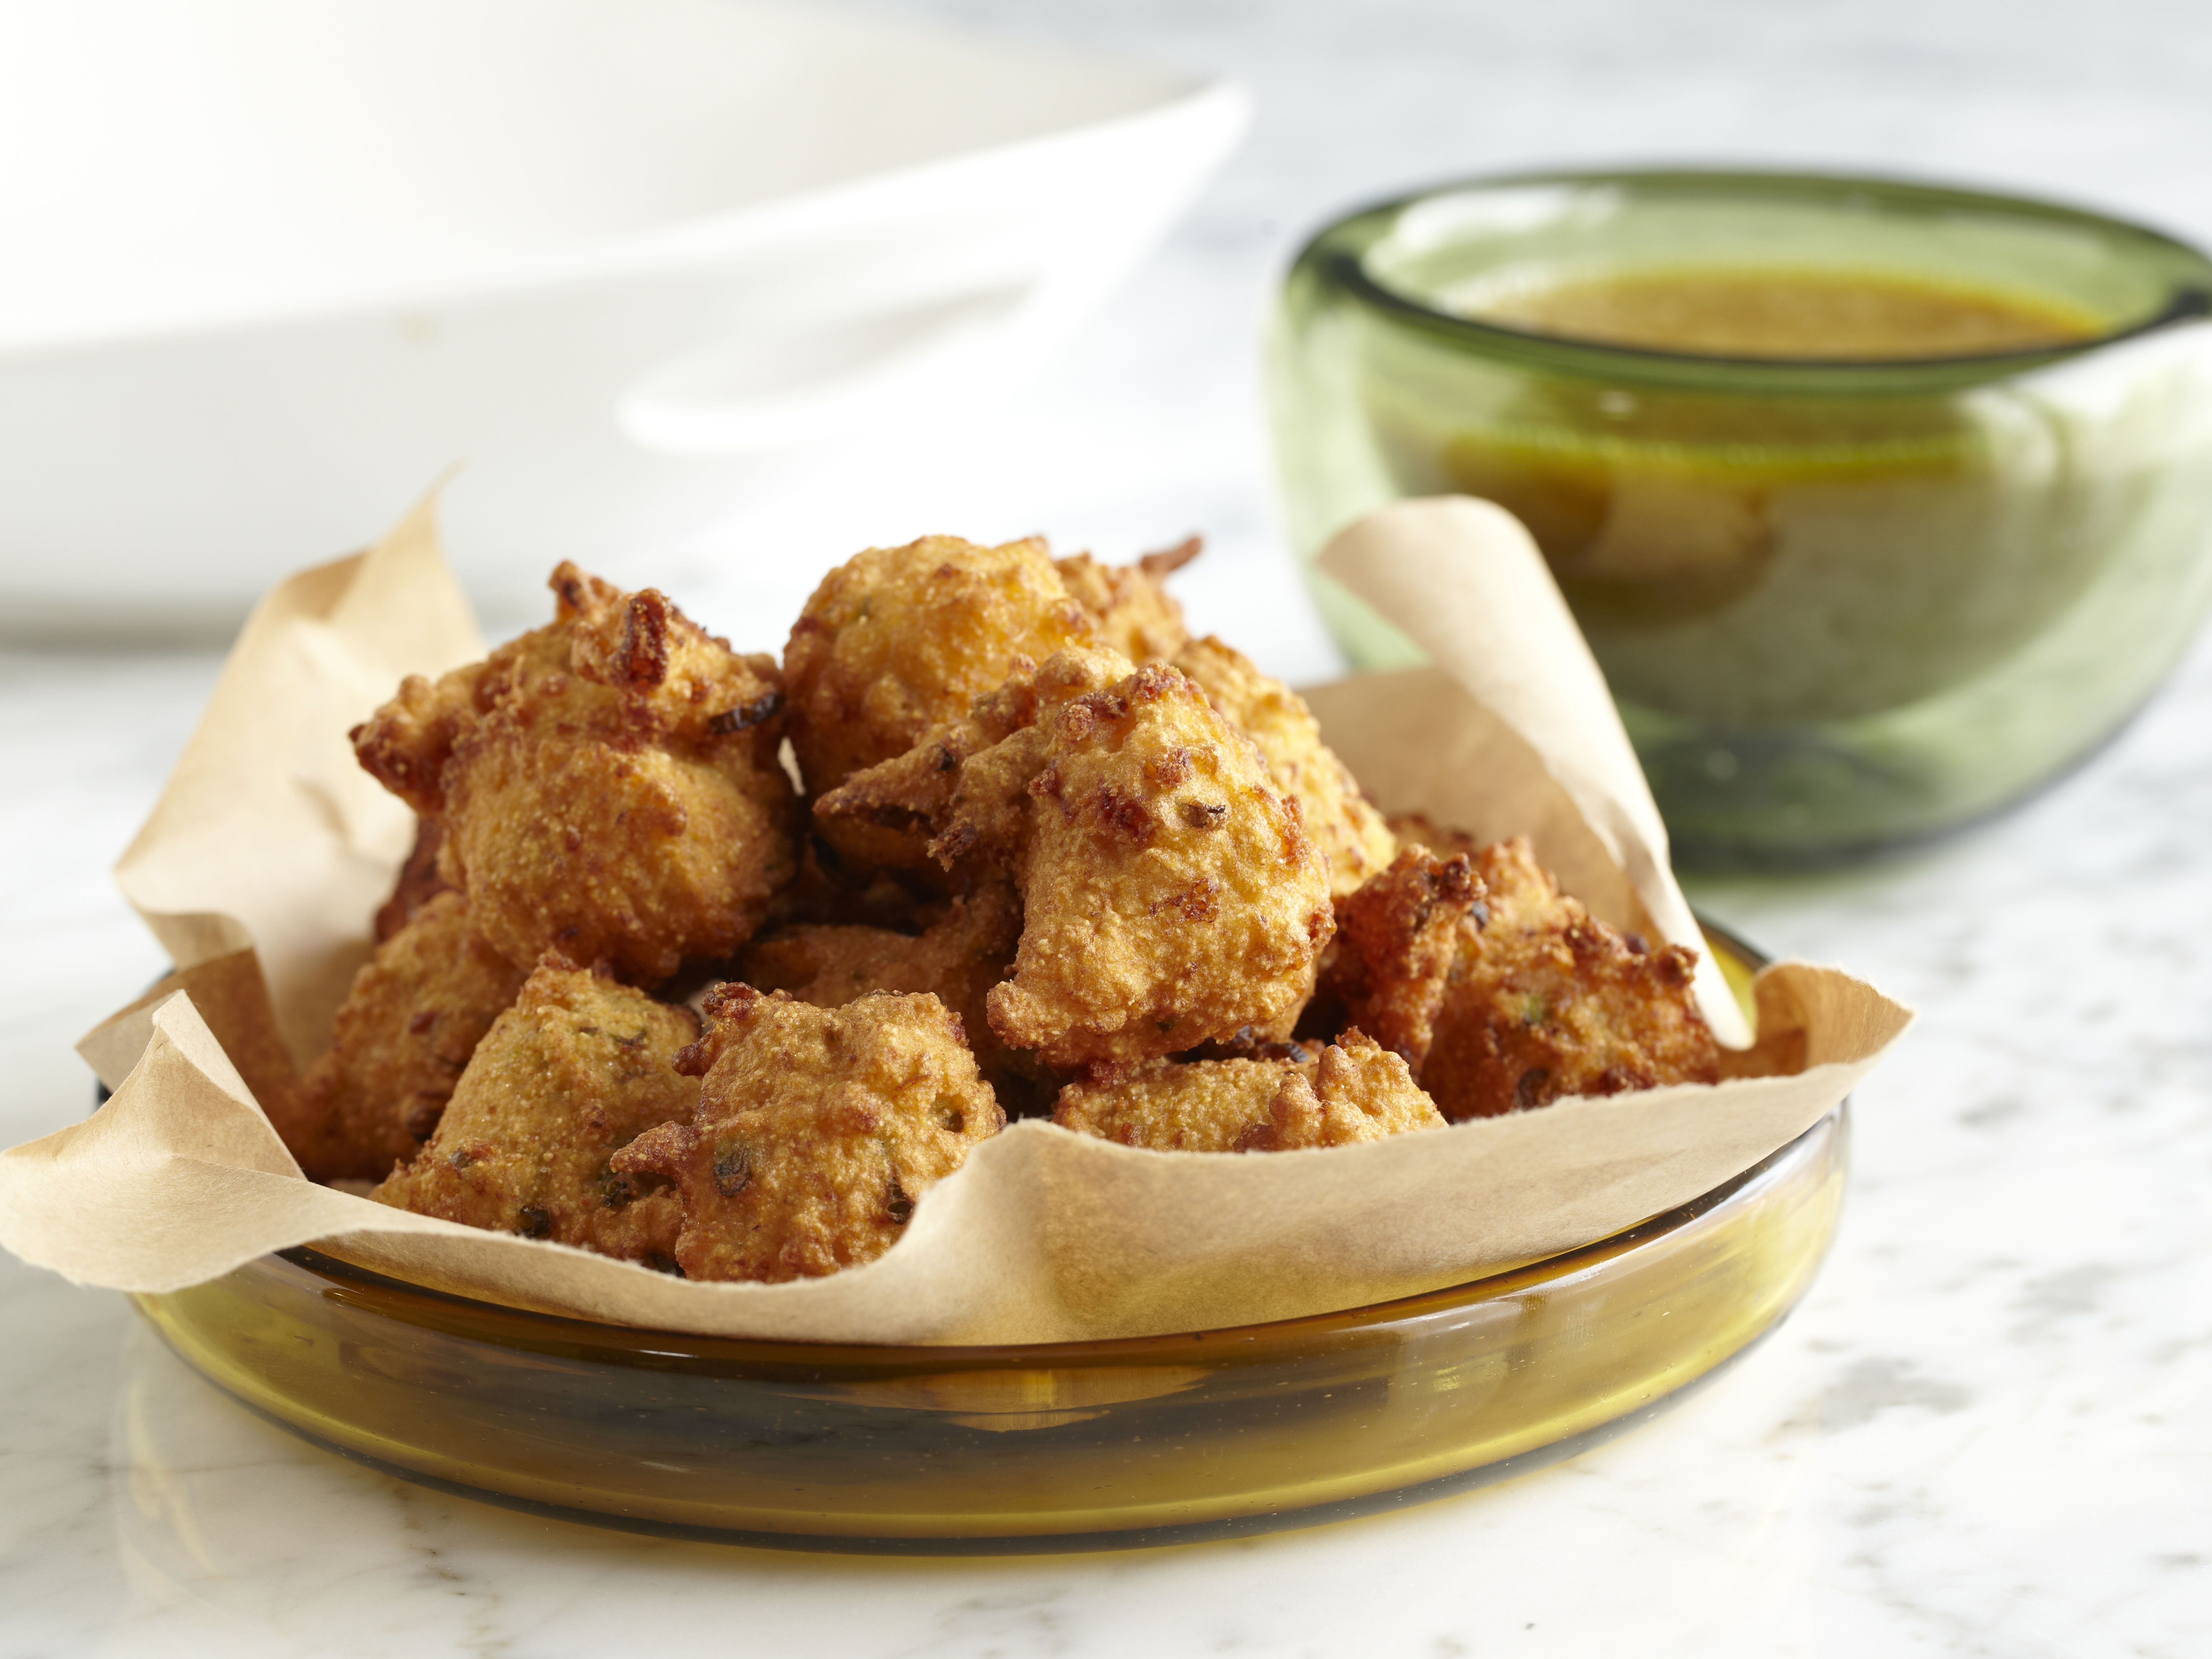 Hot And Spicy Hush Puppies Recipe In 2020 Hush Puppies Recipe Side Dishes For Bbq Food Network Recipes